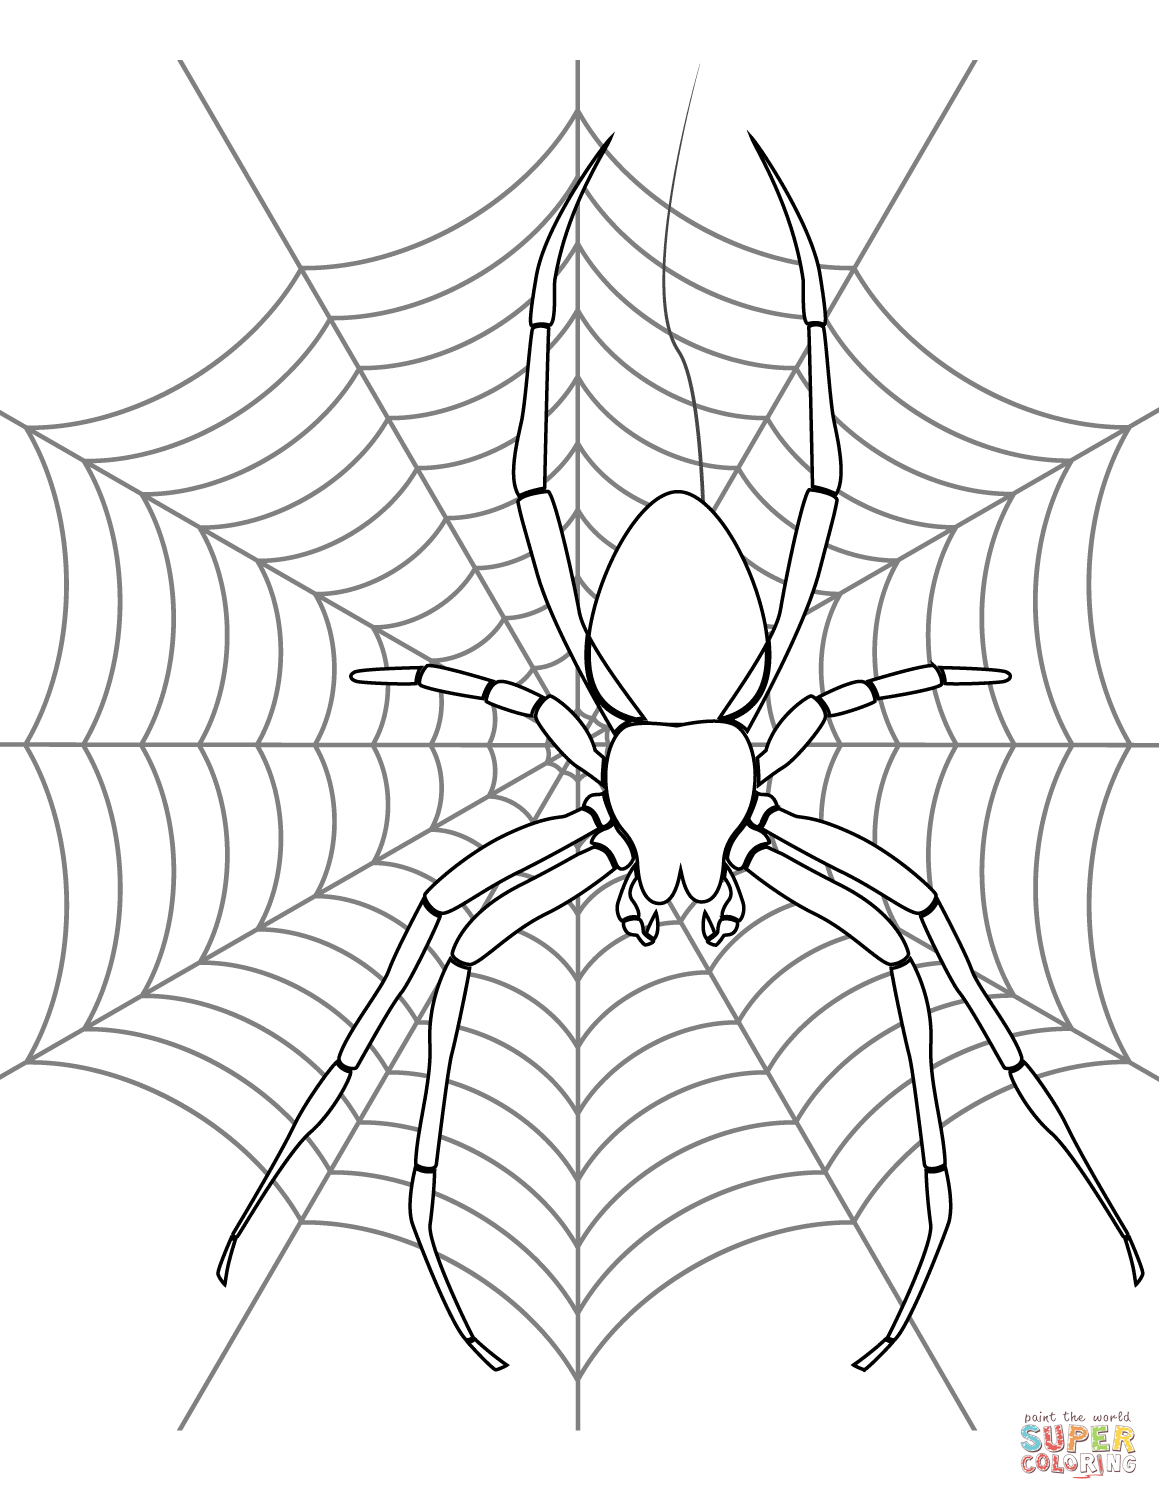 Spider On Its Web Coloring Page   Free Printable Coloring Pages - Free Printable Spider Web